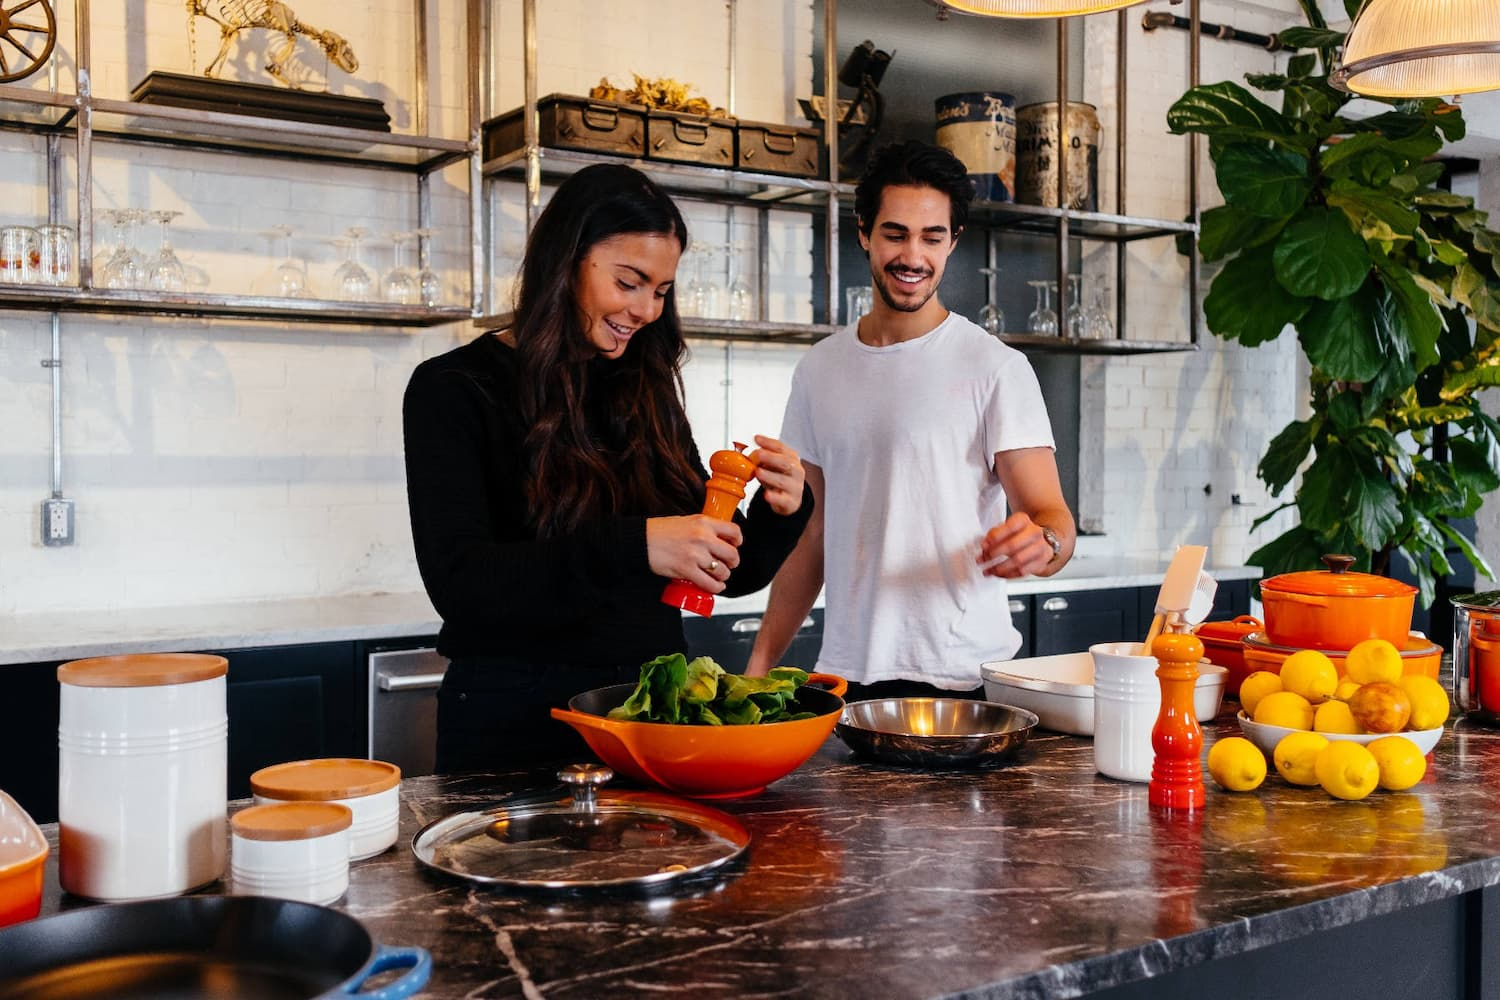 2 people smiling in a kitchen full of Le Creuset